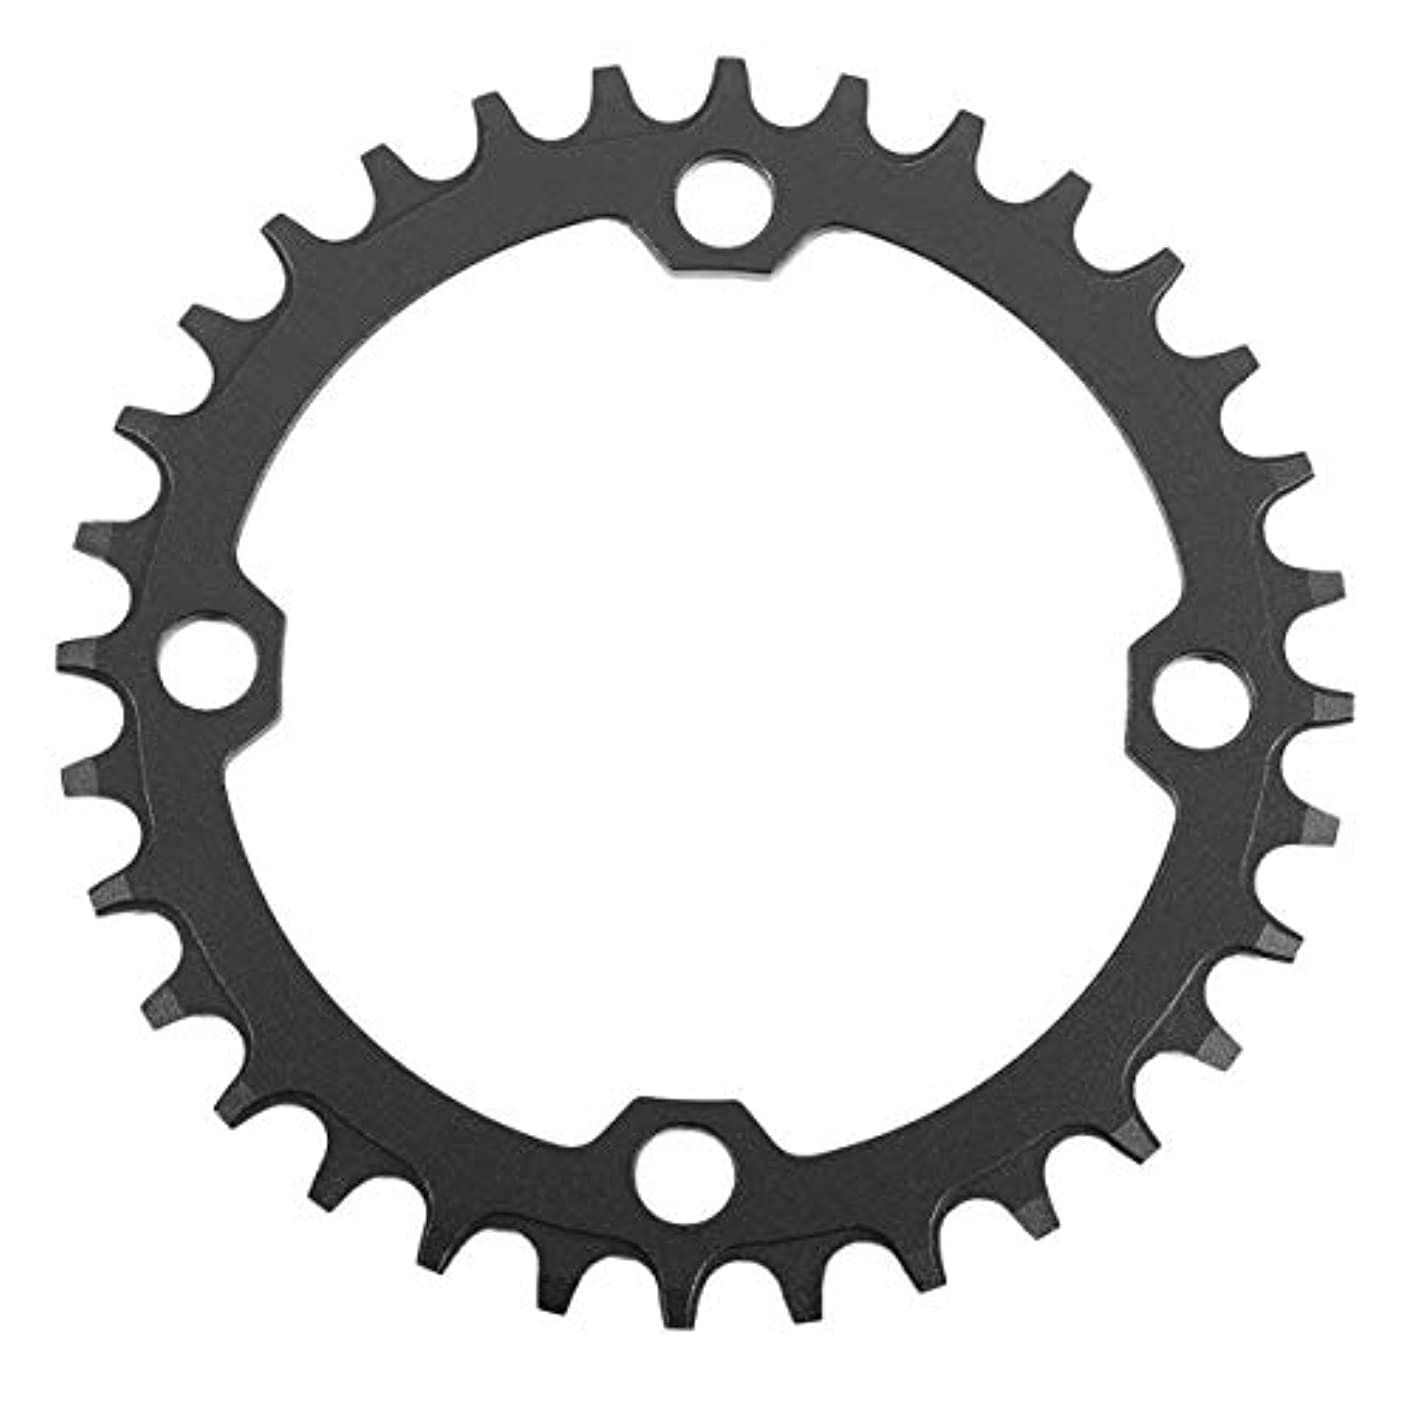 宮殿感じる隠すDECKAS Narrow Wide Bike MTB Crank Round Oval Chainring Chain Ring自転車Chainwheel Bike Circle Single Plate-ブラック